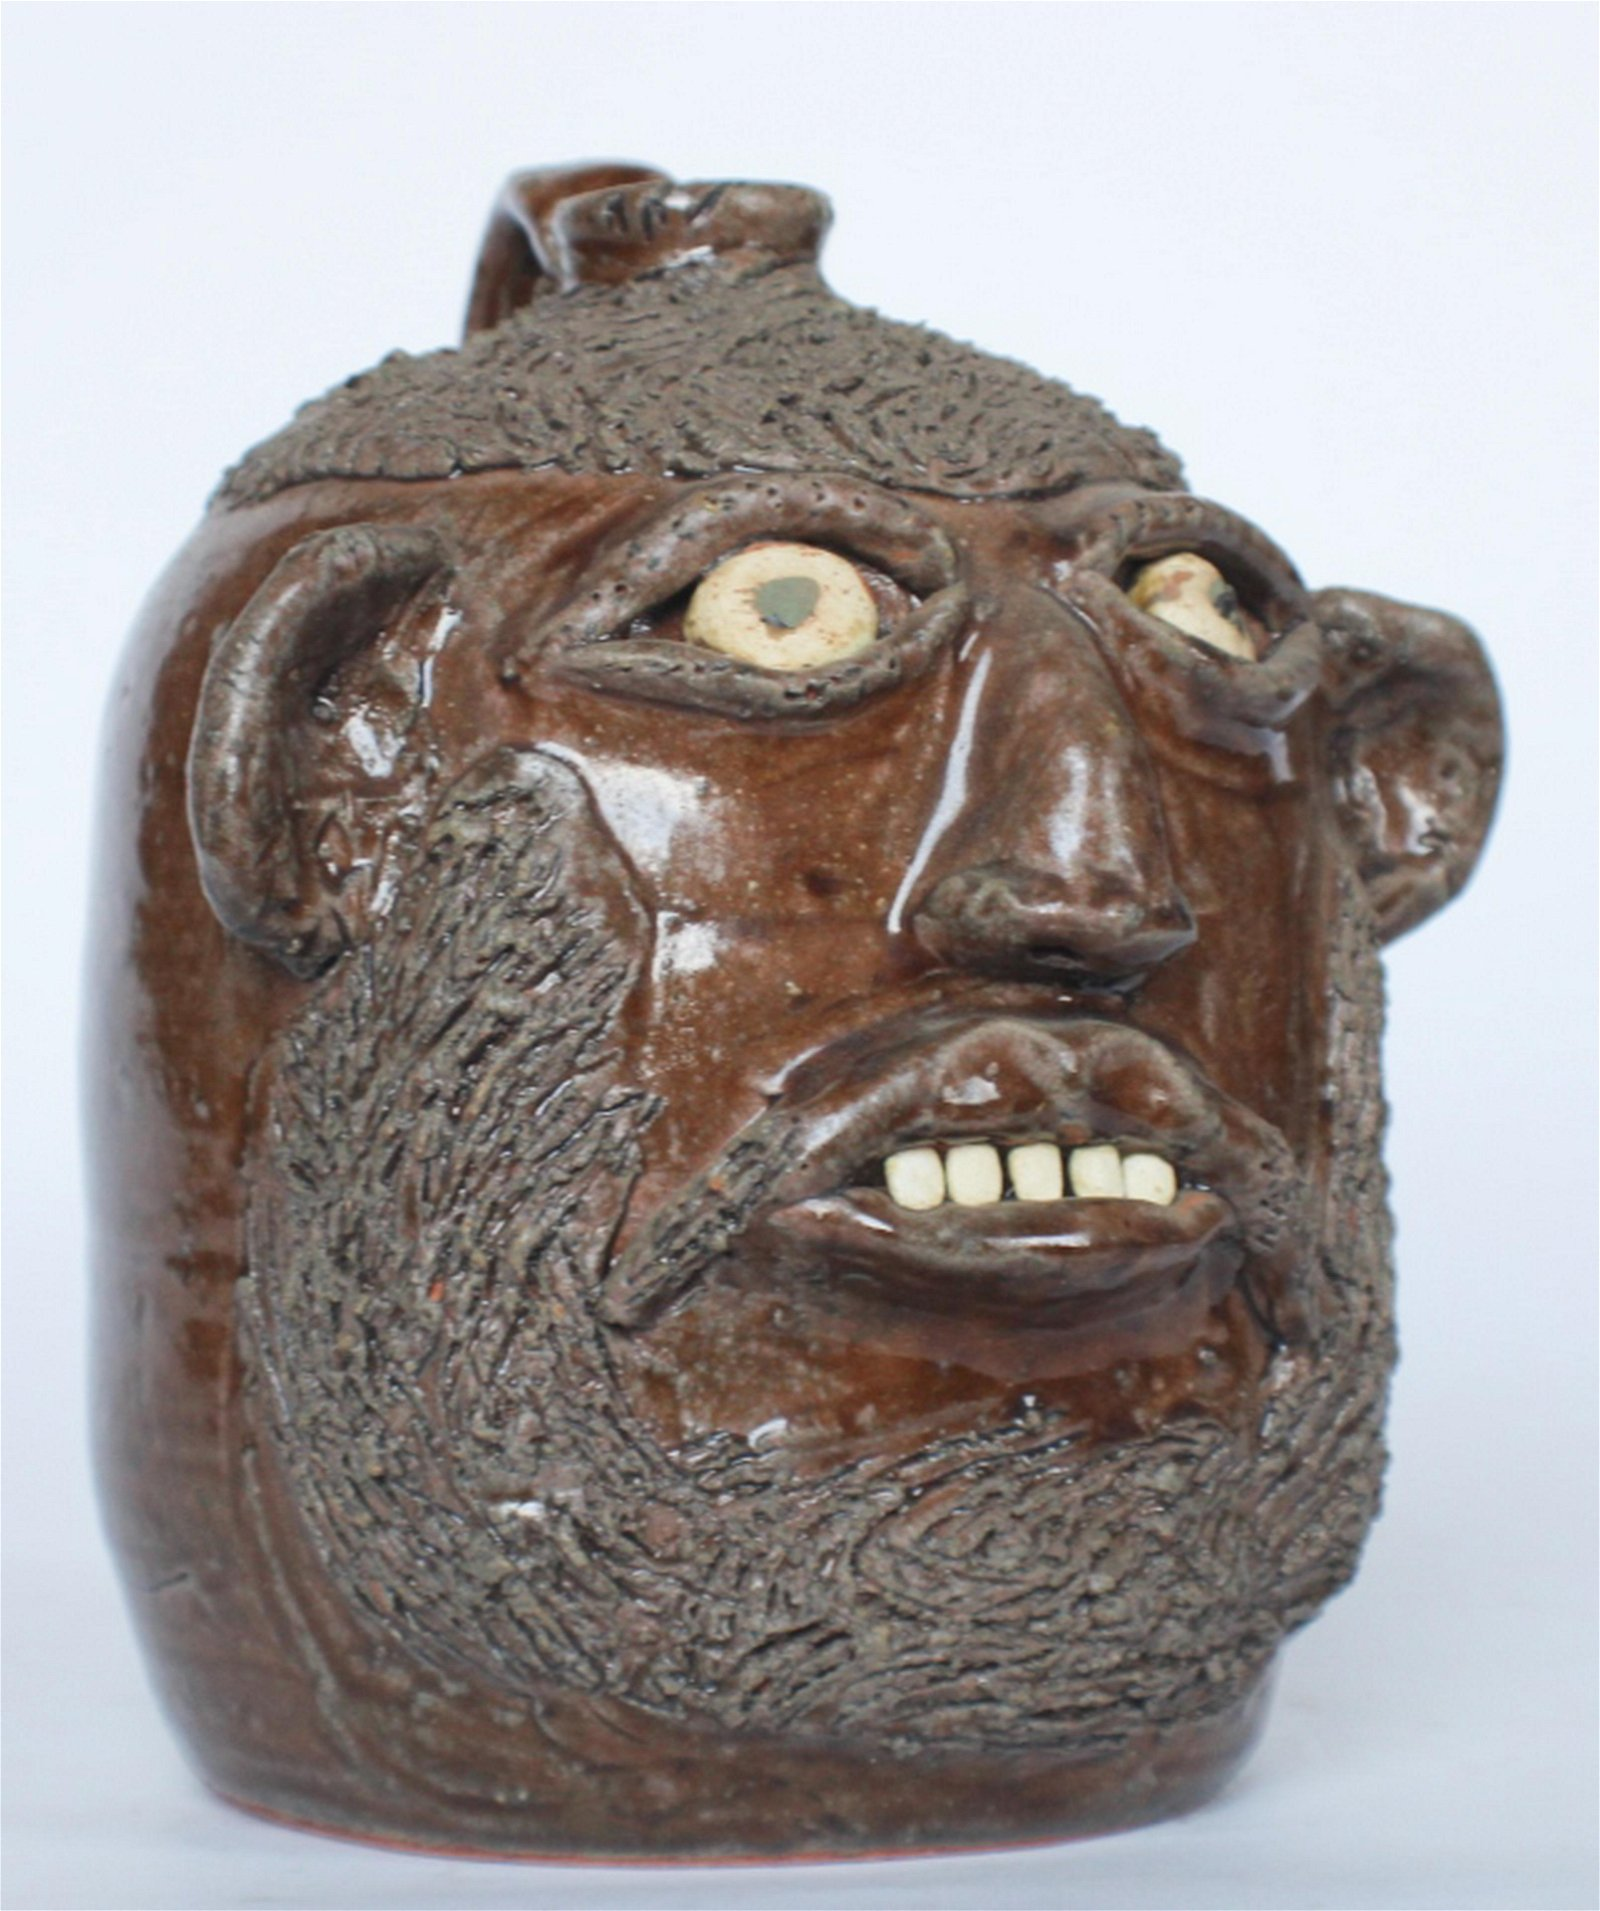 Southern Stoneware Face Jug by Flossie Meaders